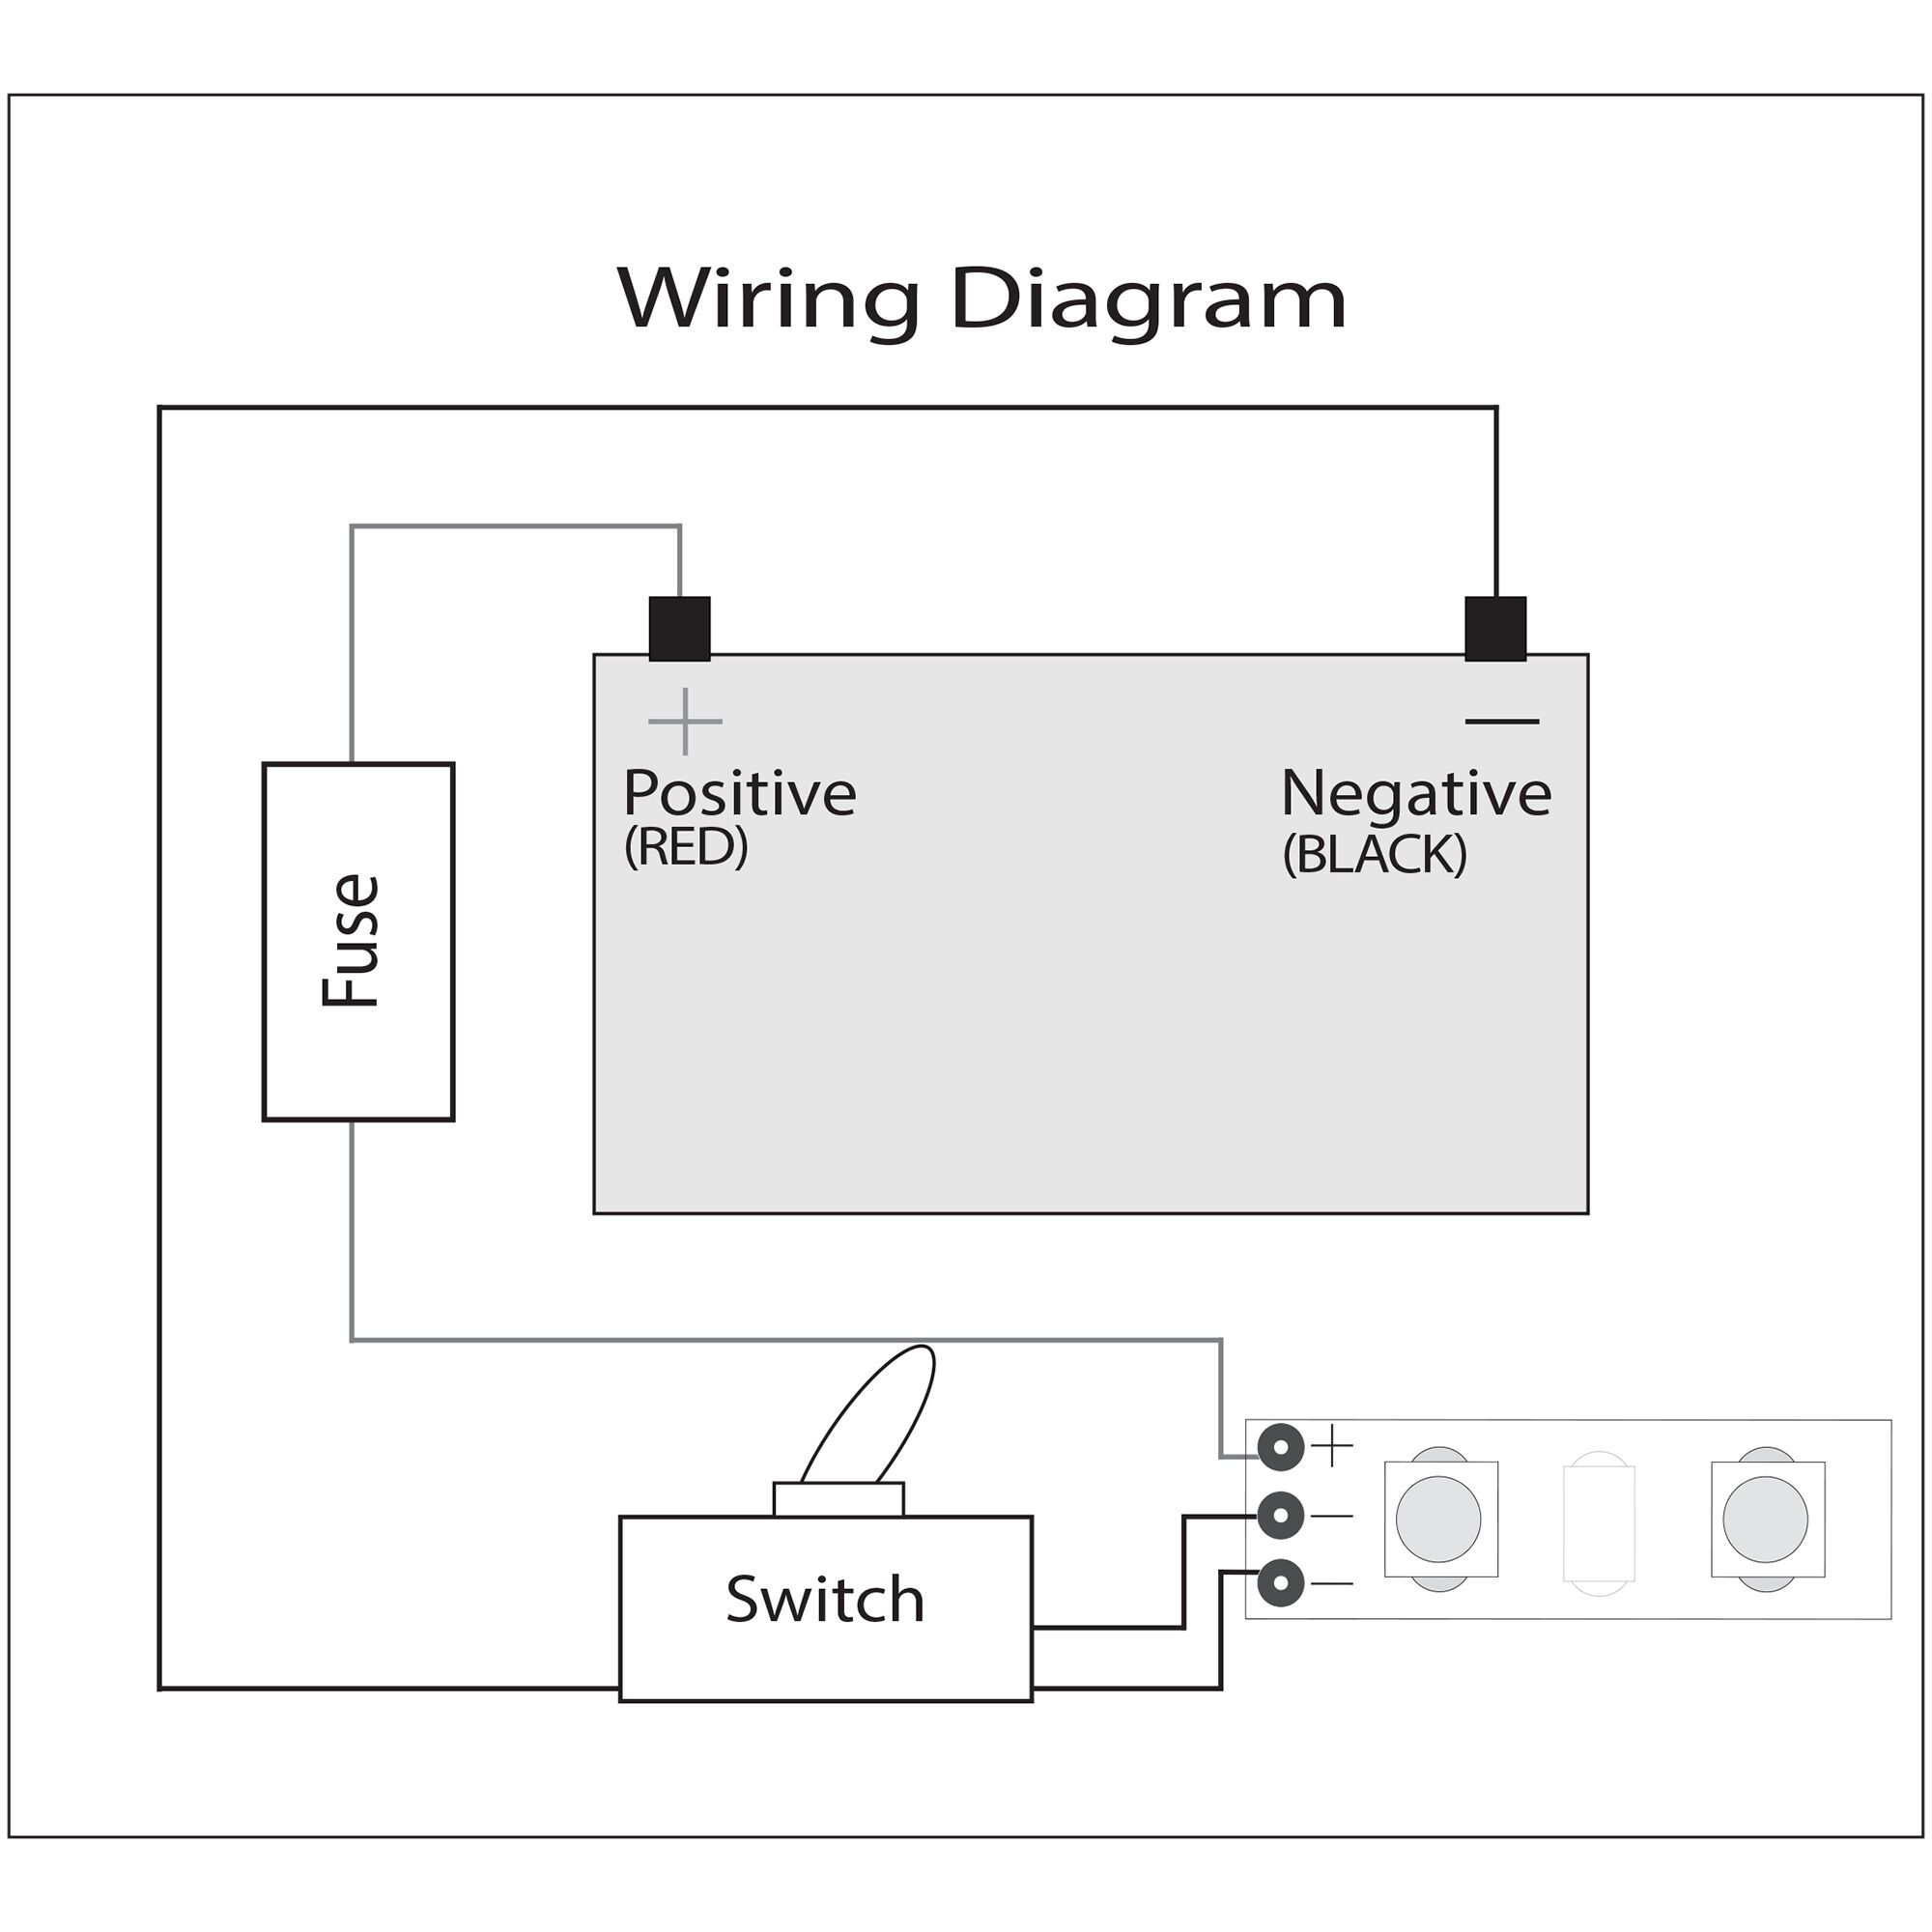 Cable To Phone Jack Wiring Diagram On Boat Motor Diagram Trim Tab